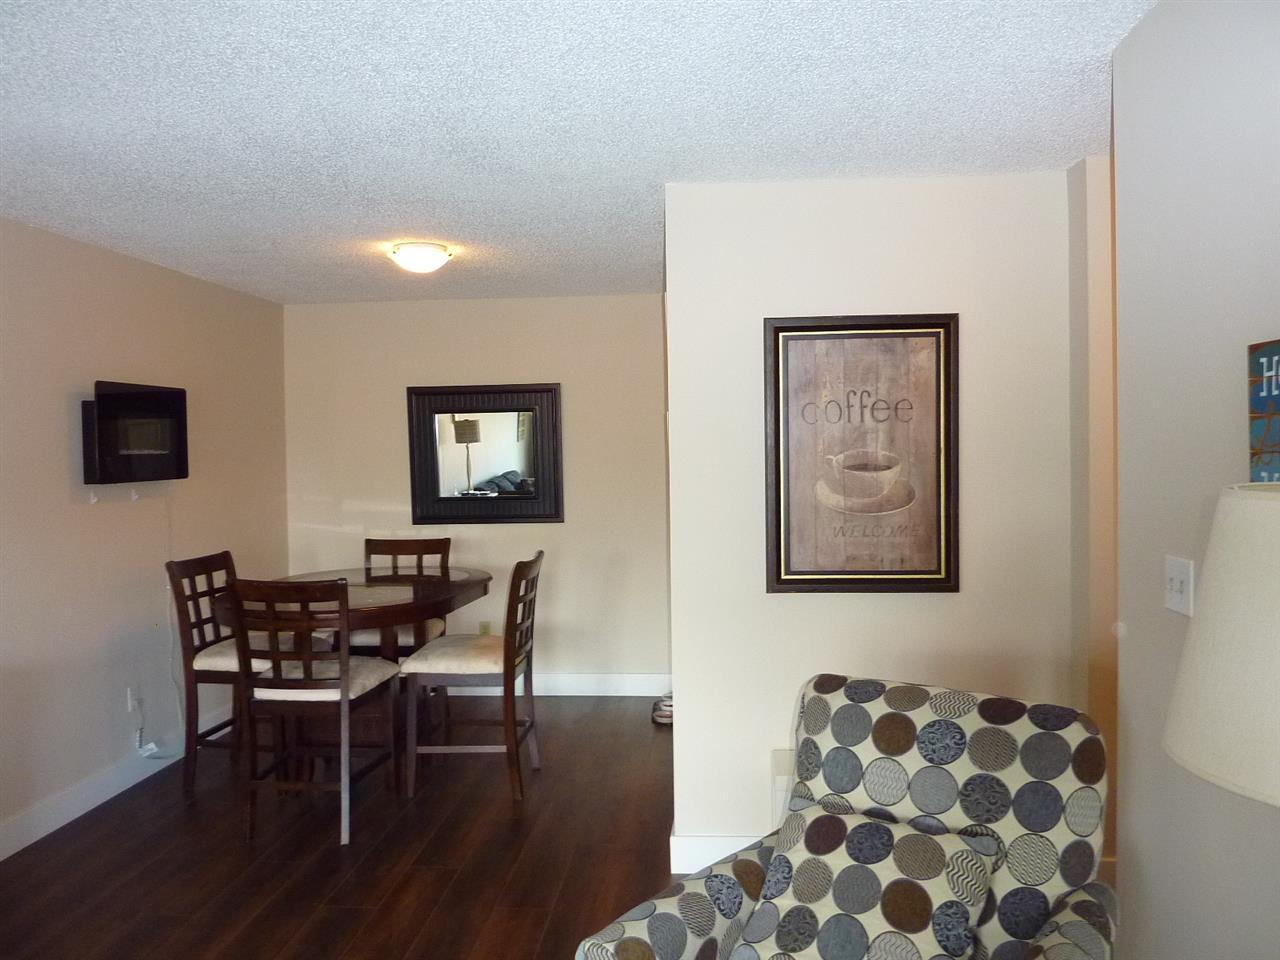 "Photo 3: 327 8860 NO 1 Road in Richmond: Boyd Park Condo for sale in ""APPLE GREEENE"" : MLS® # R2172635"